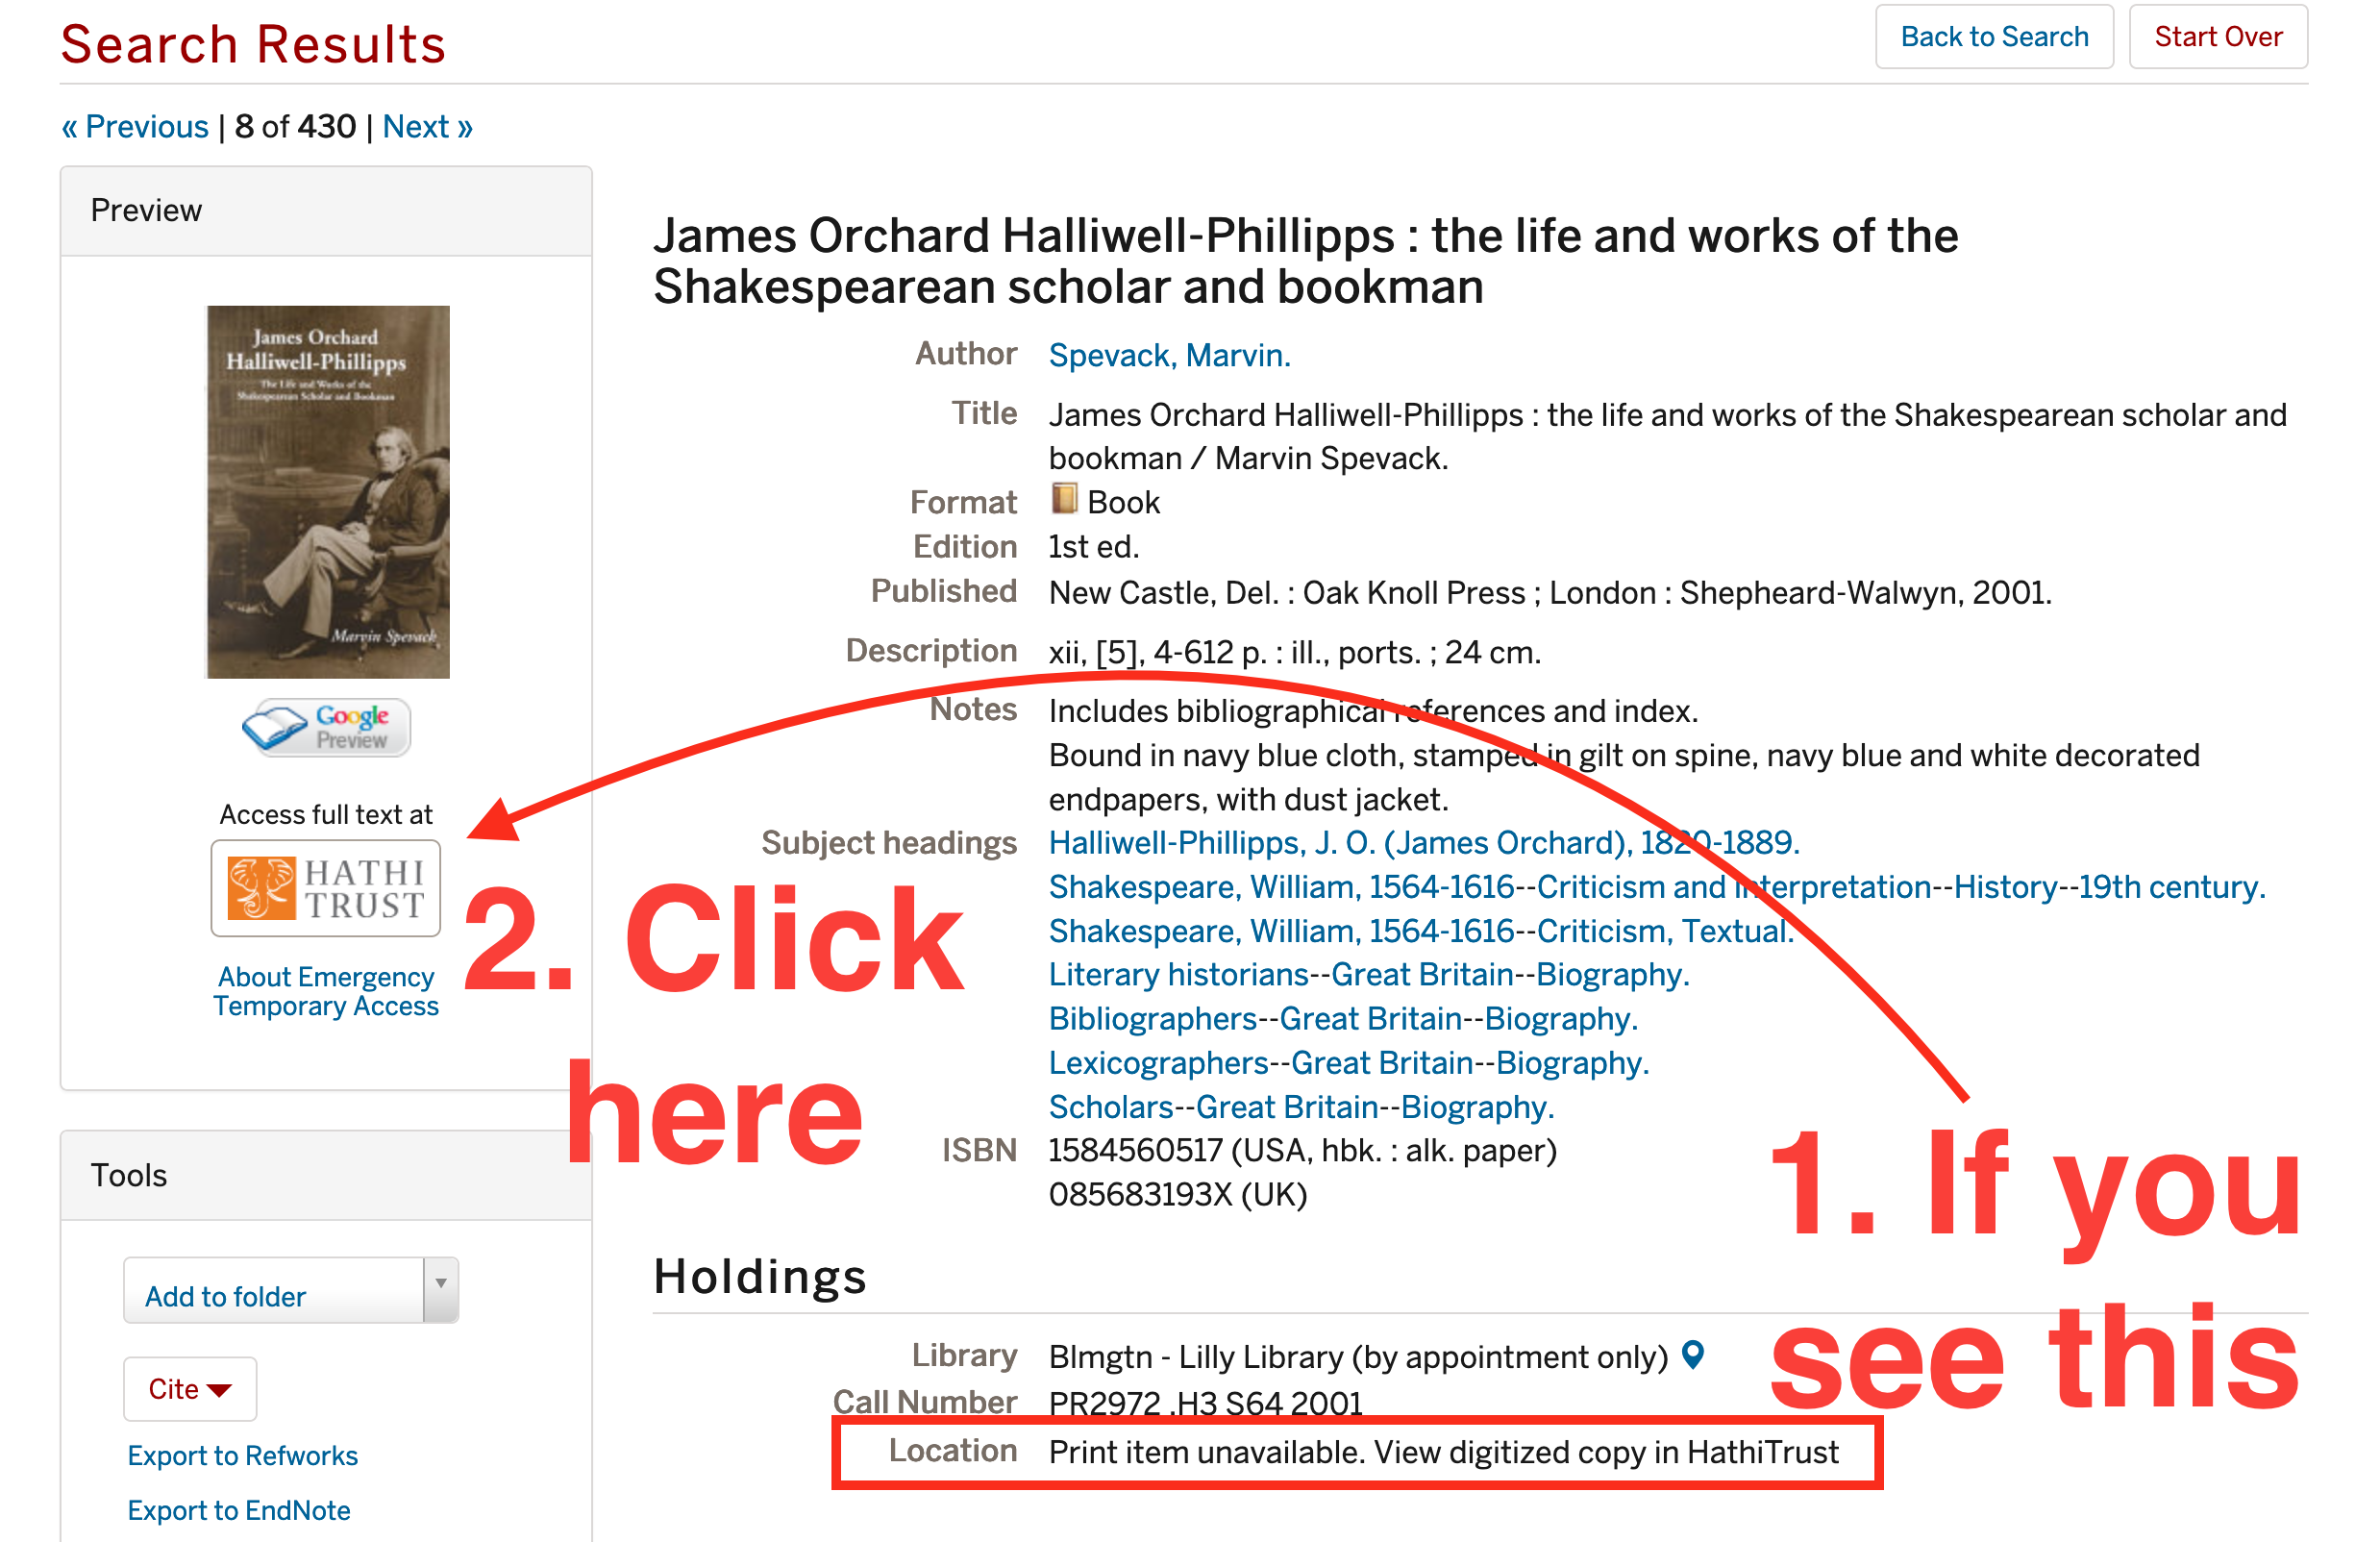 """IUCAT record with red text """"1. If you see this"""" (""""Print item unavailable"""") and """"2. Click here"""" (Hathitrust link)"""